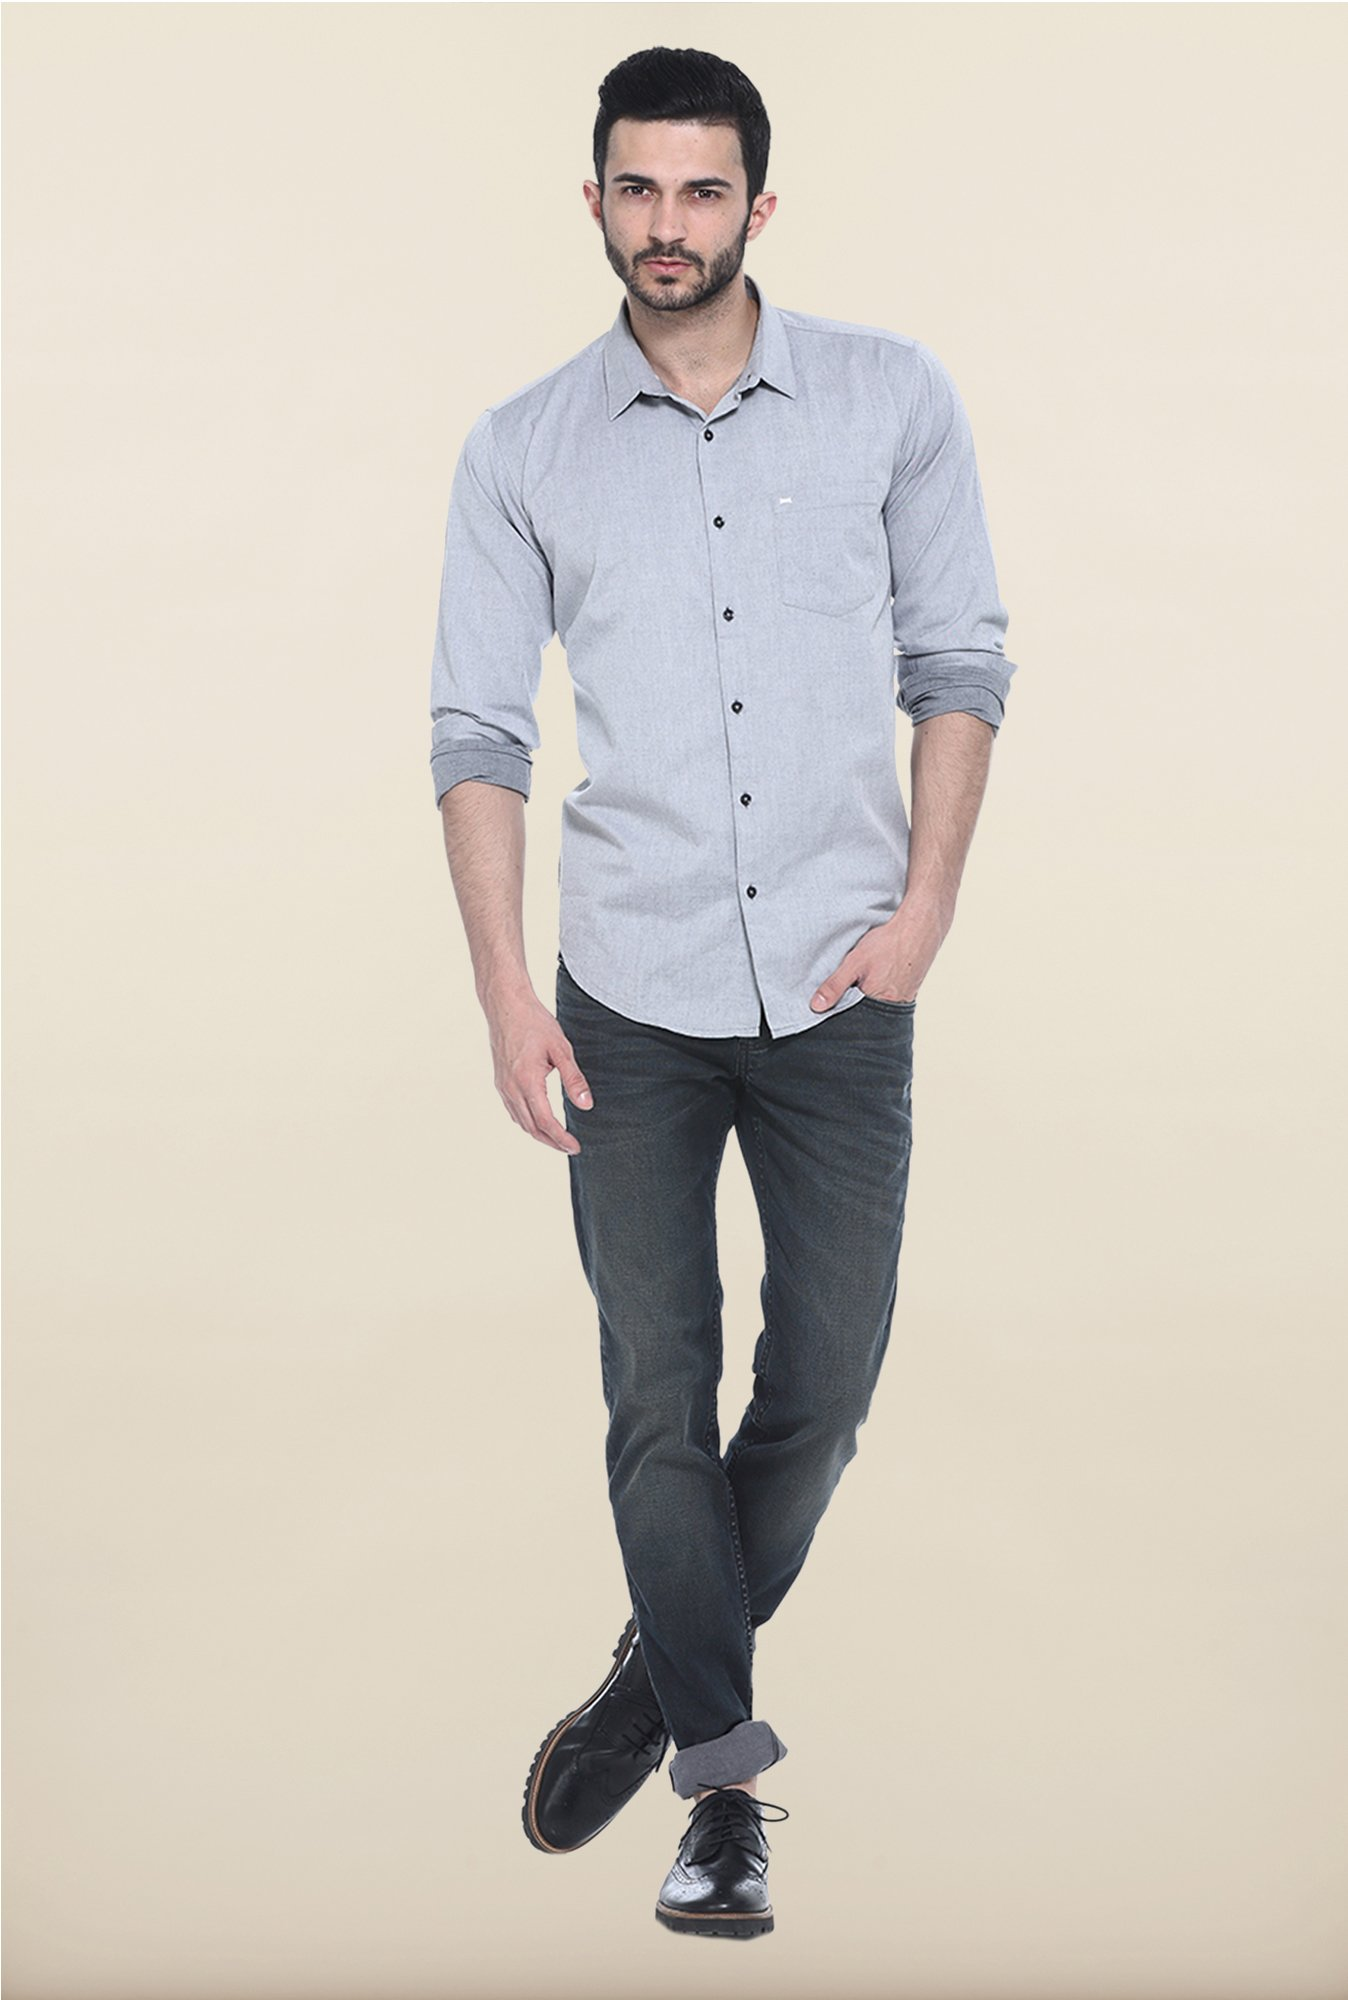 Basics Grey Solid Casual Shirt